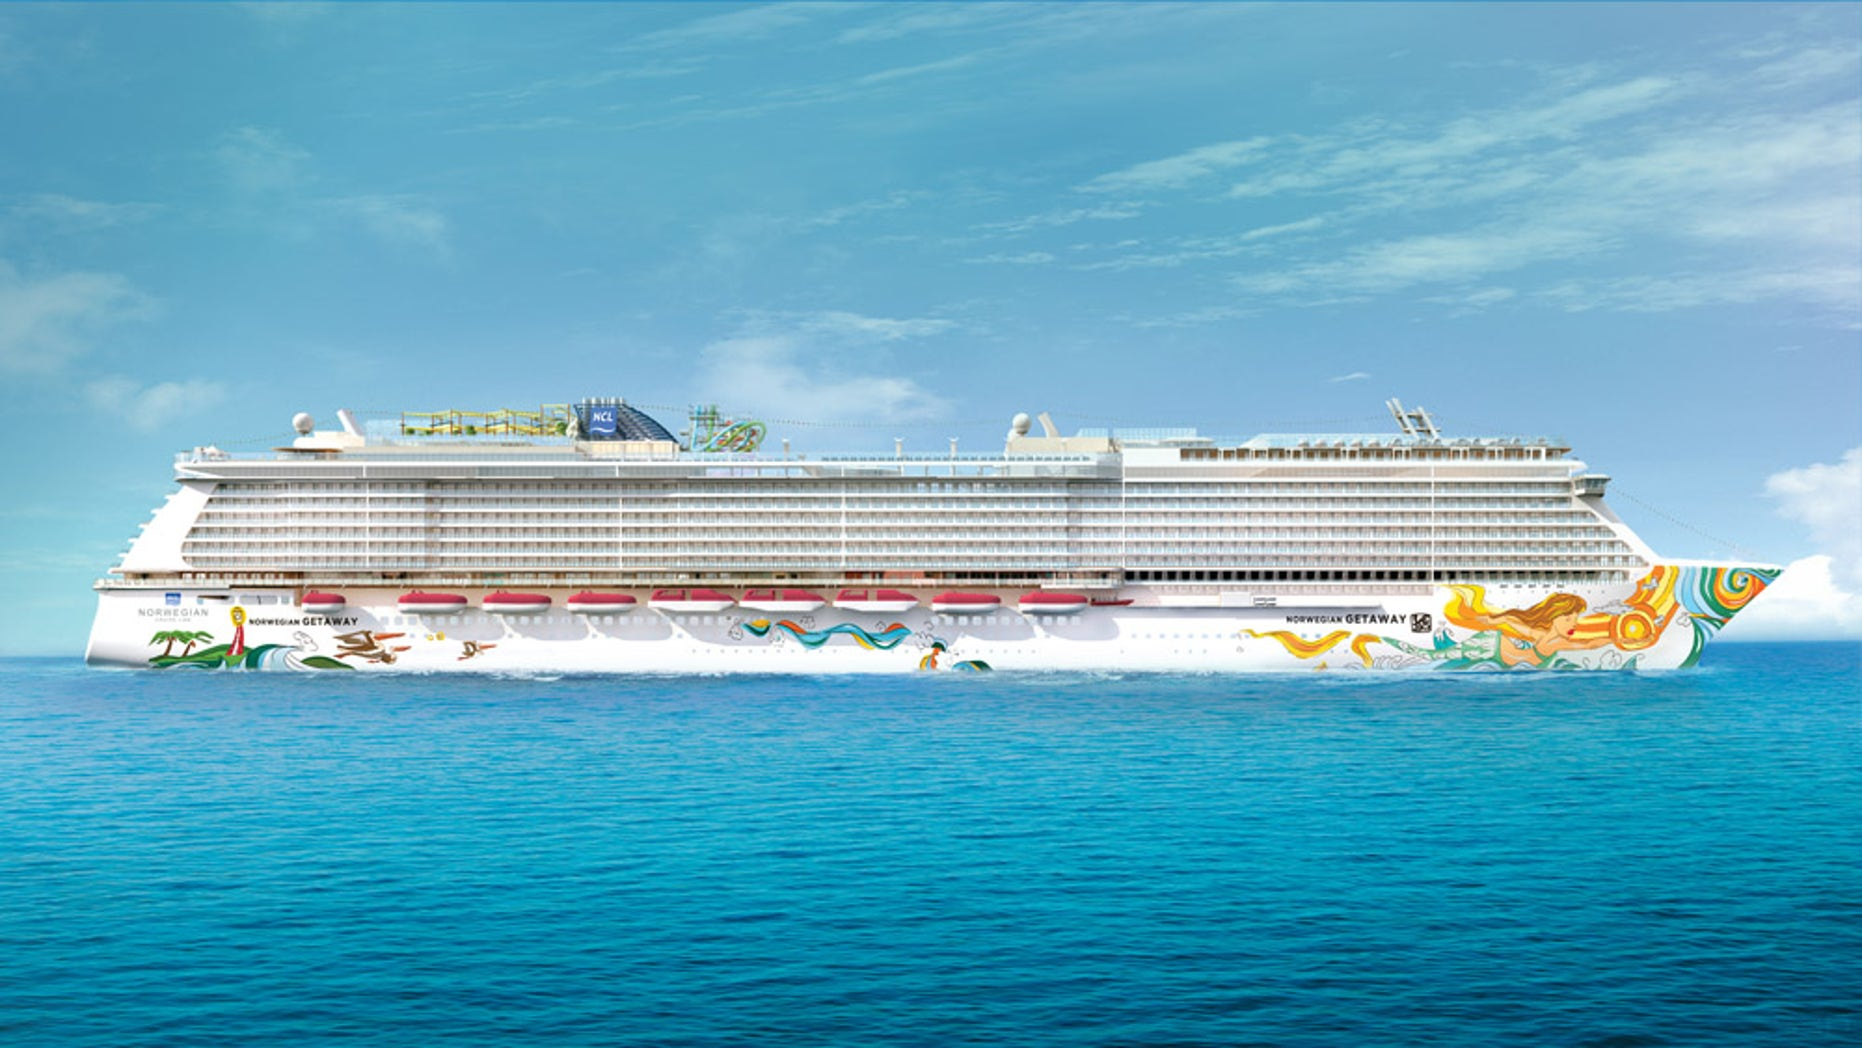 New cruise ship to be Super Bowl floating hotel | Fox News